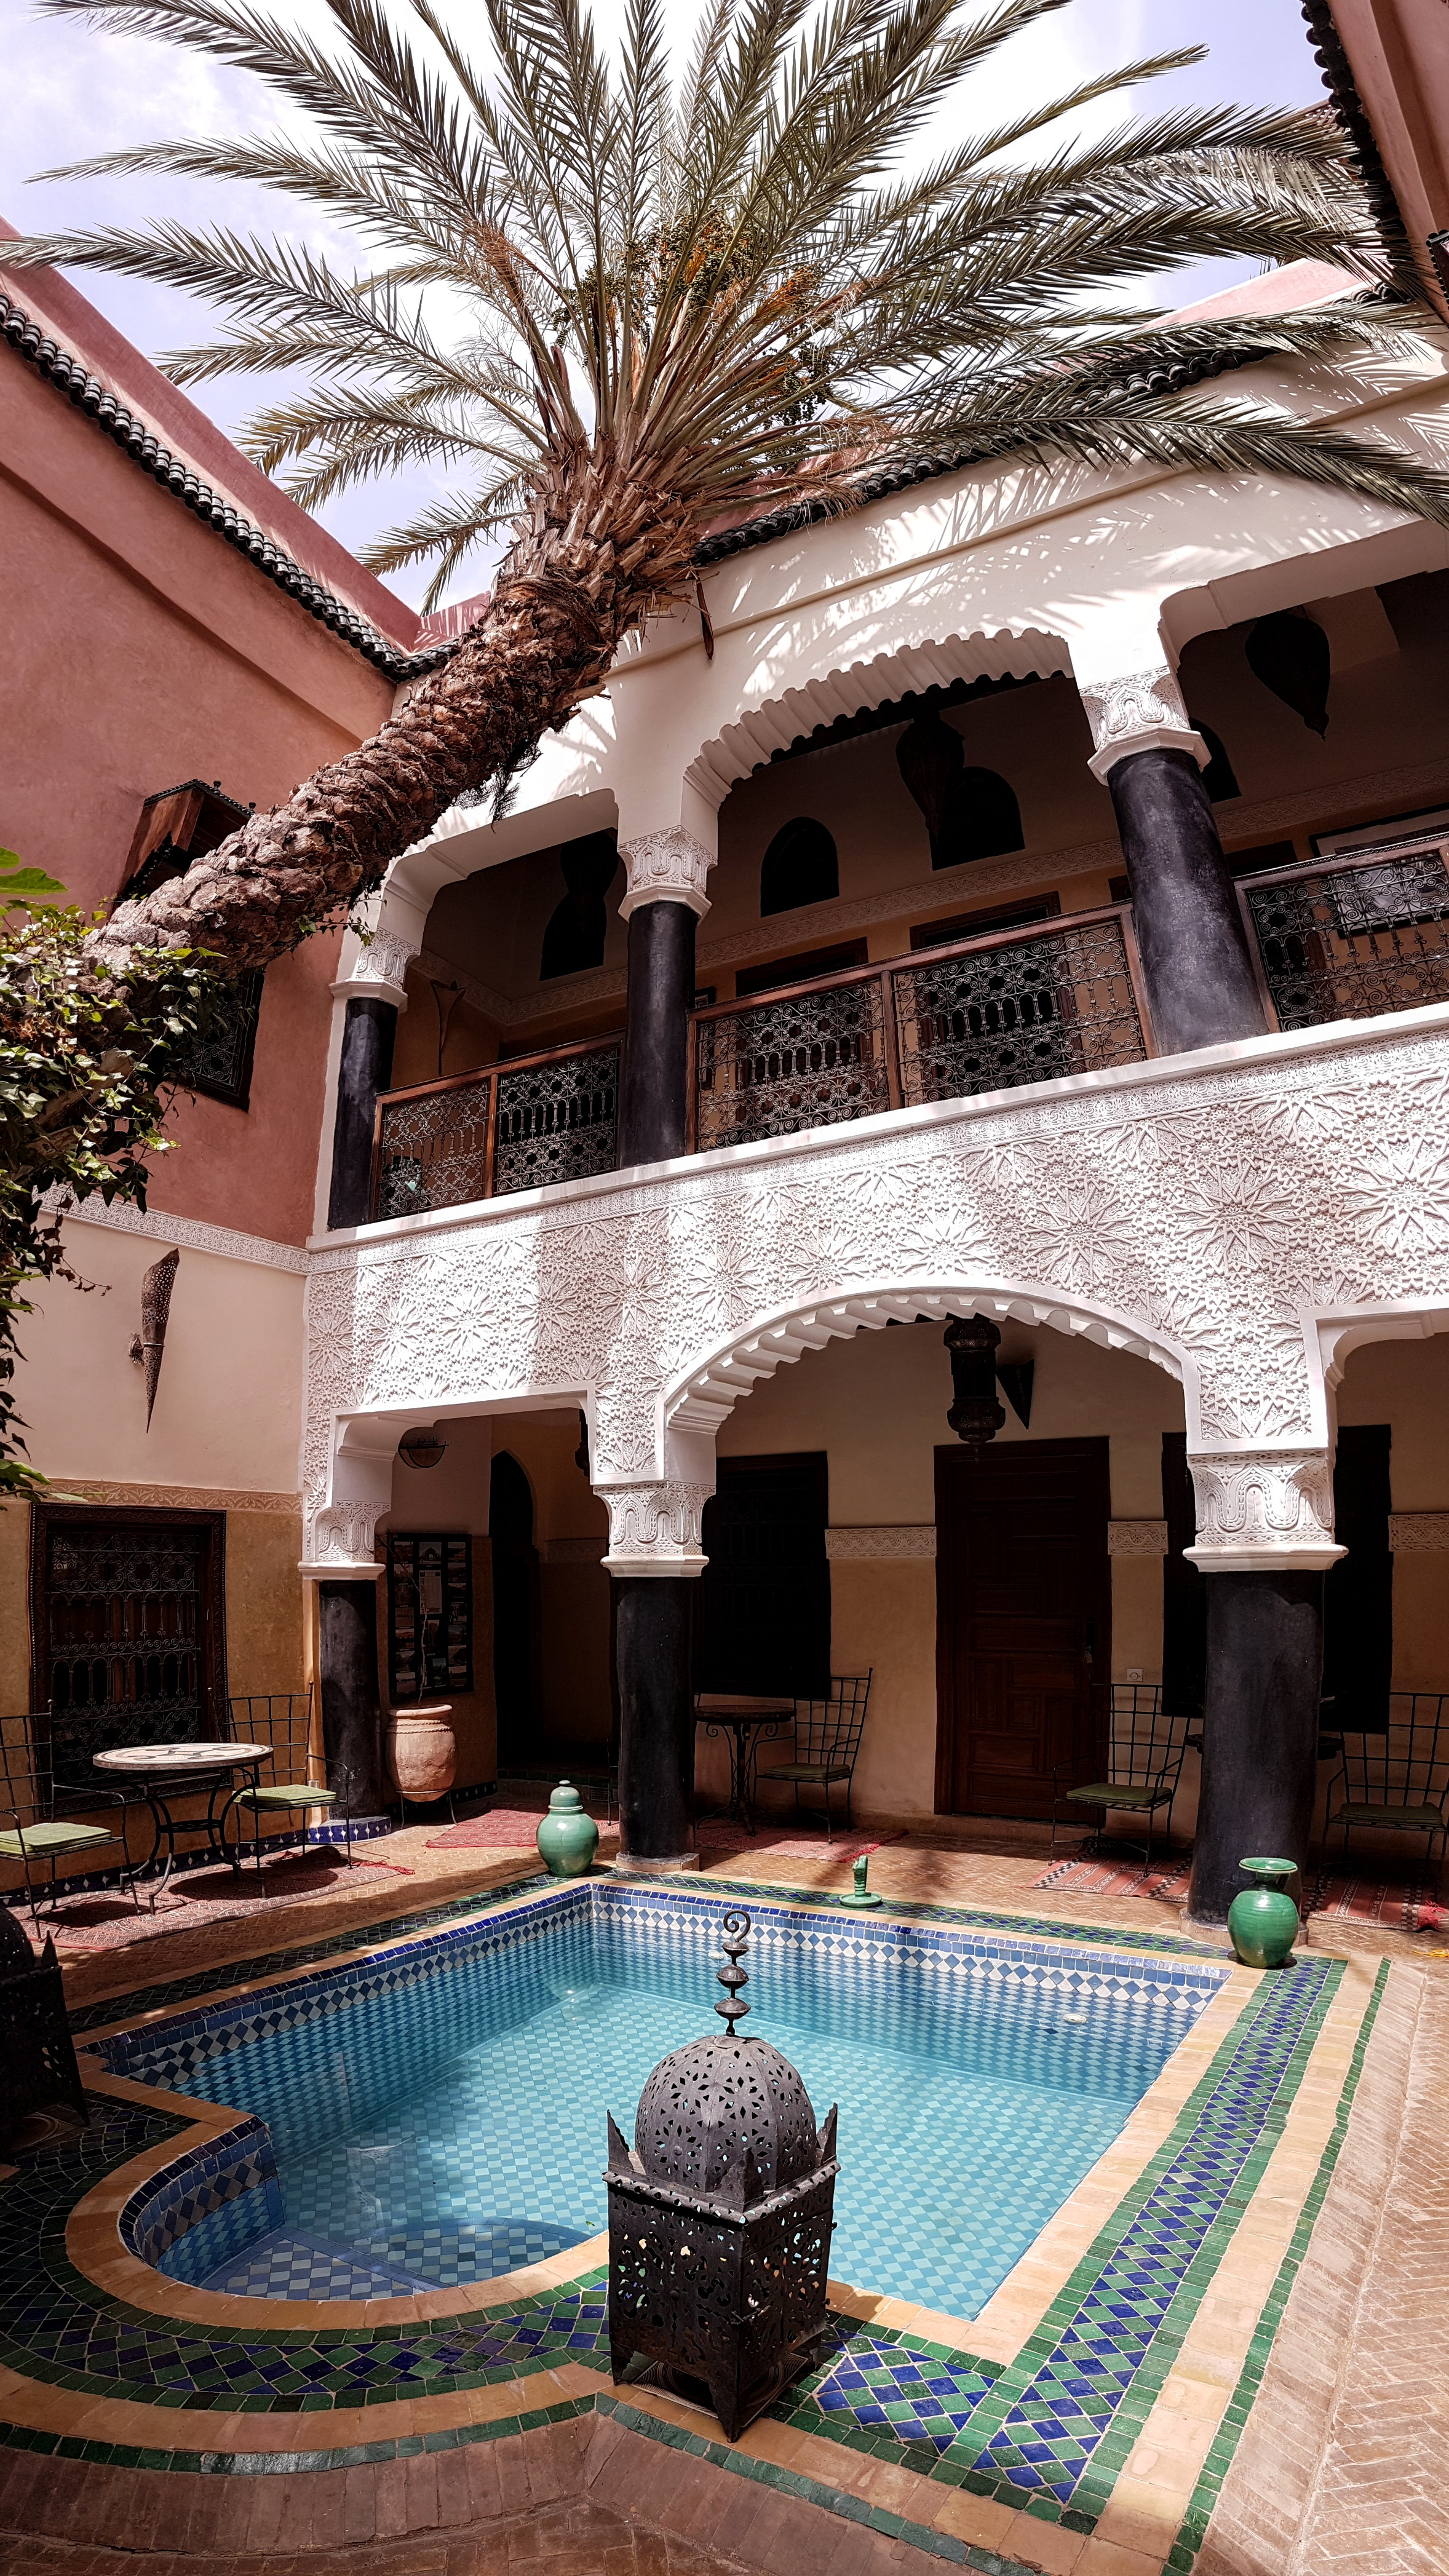 Our luxurious looking Moroccan riad